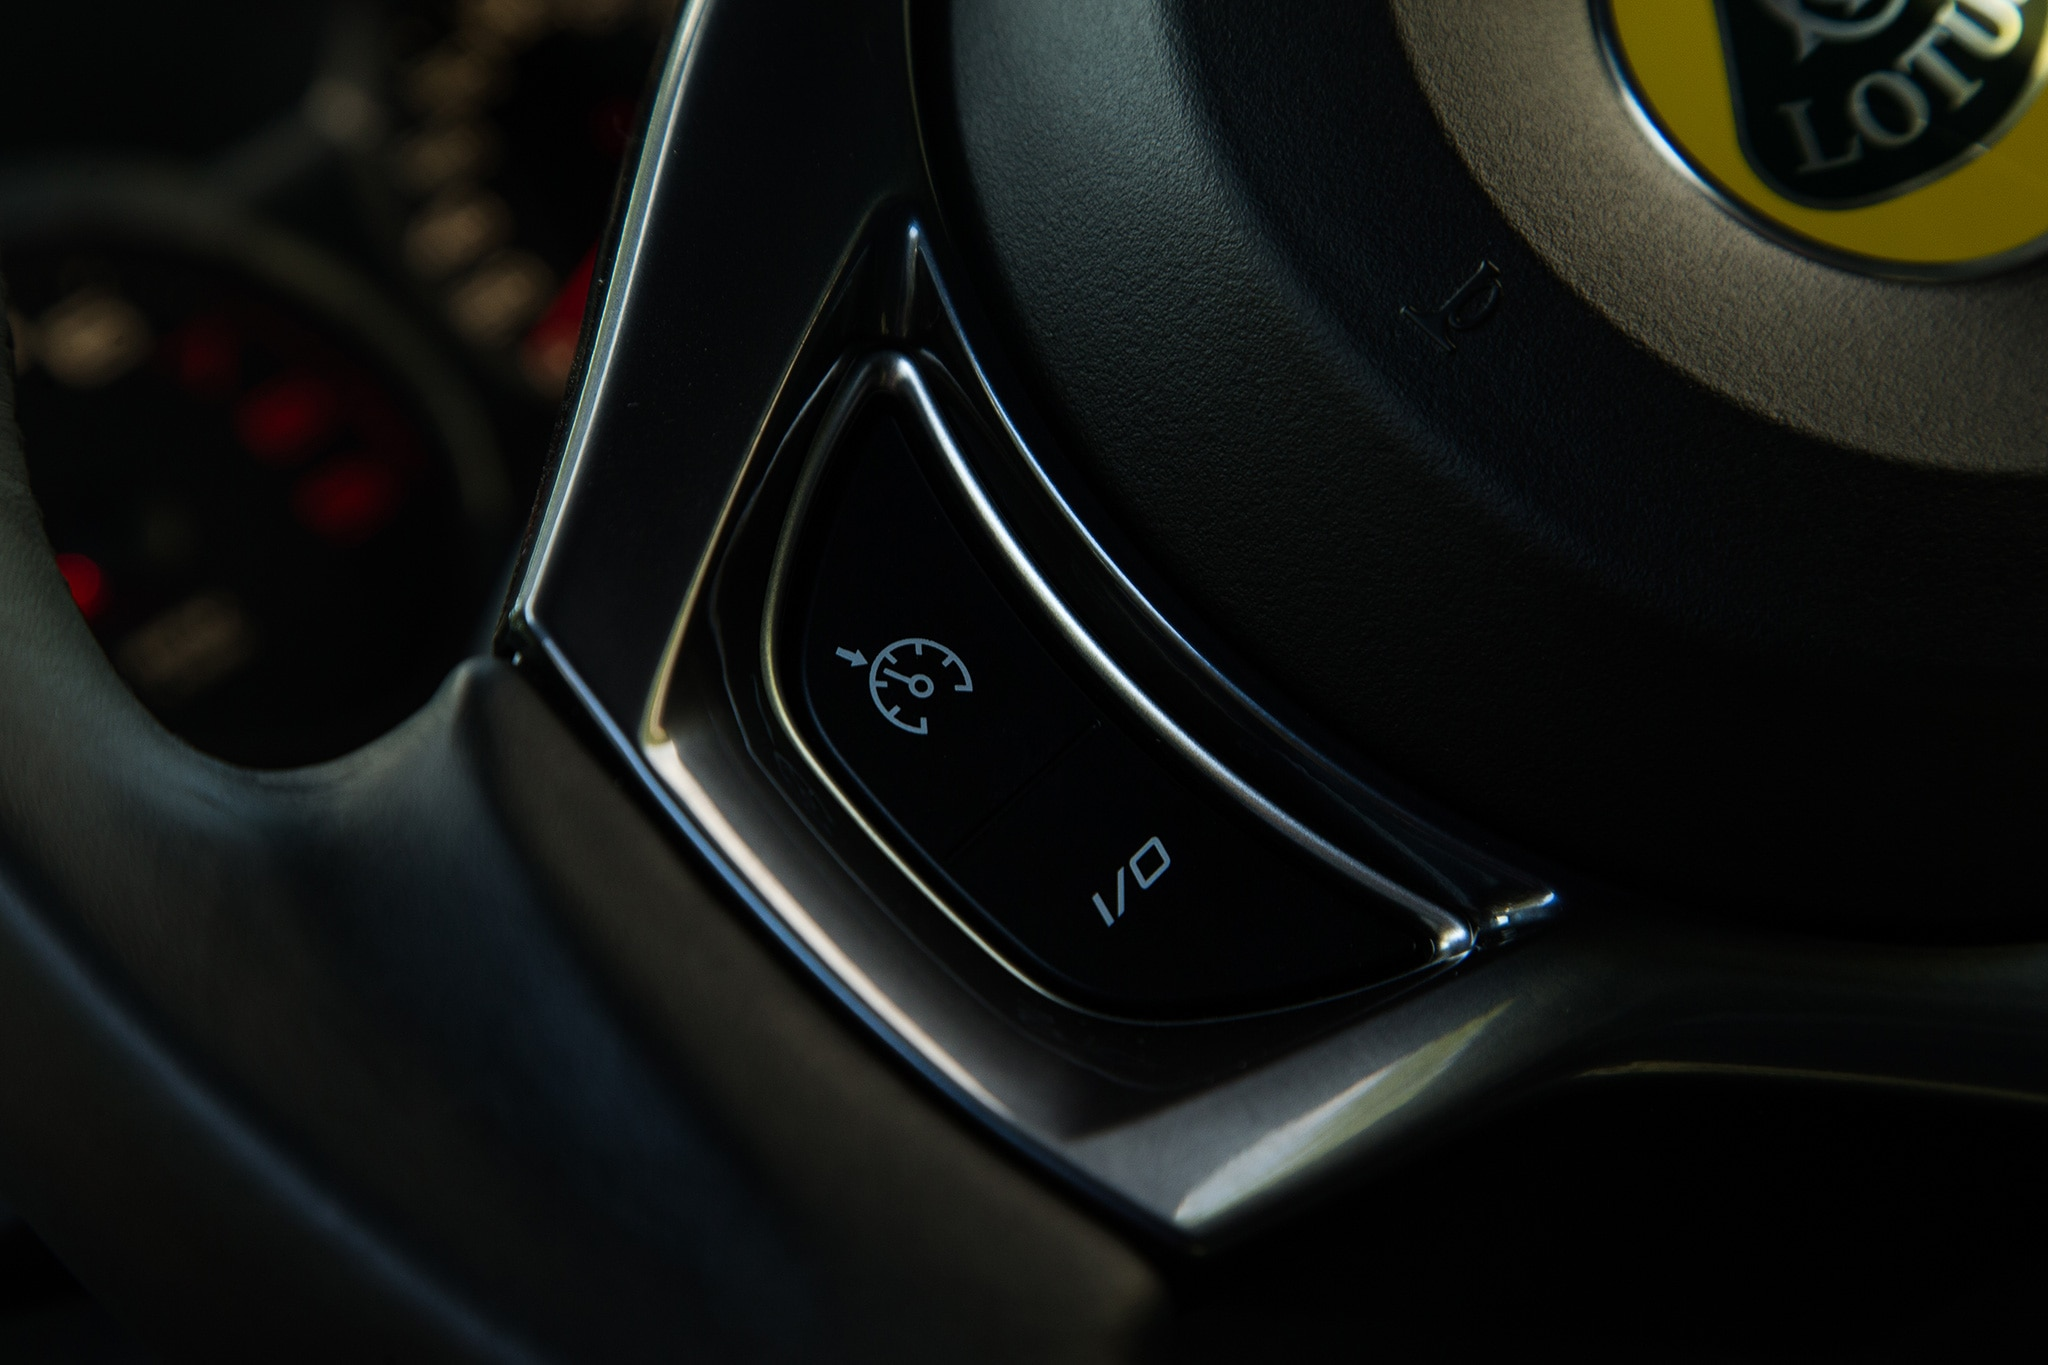 2017 Lotus Evora 400 Steering Wheel Controls